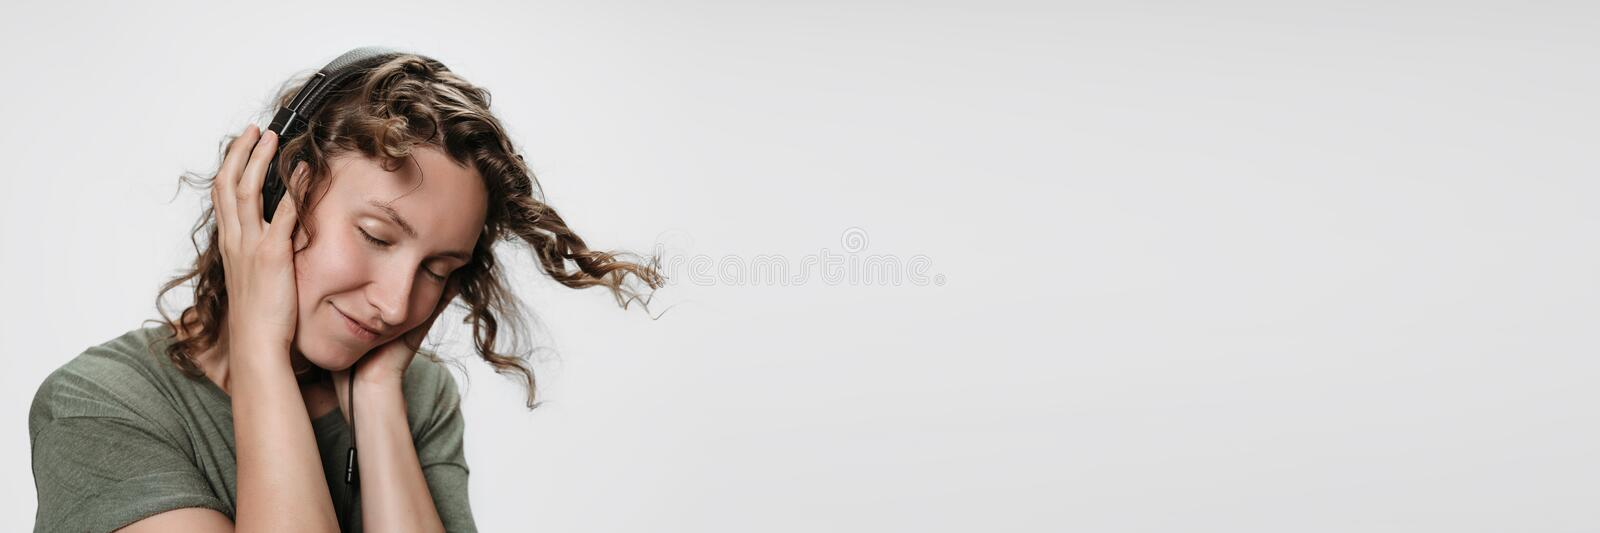 Carefree cheerful young curly woman listen favourite music with her stereo headphones. Carefree cheerful curly woman listen favourite music with her stereo stock photo